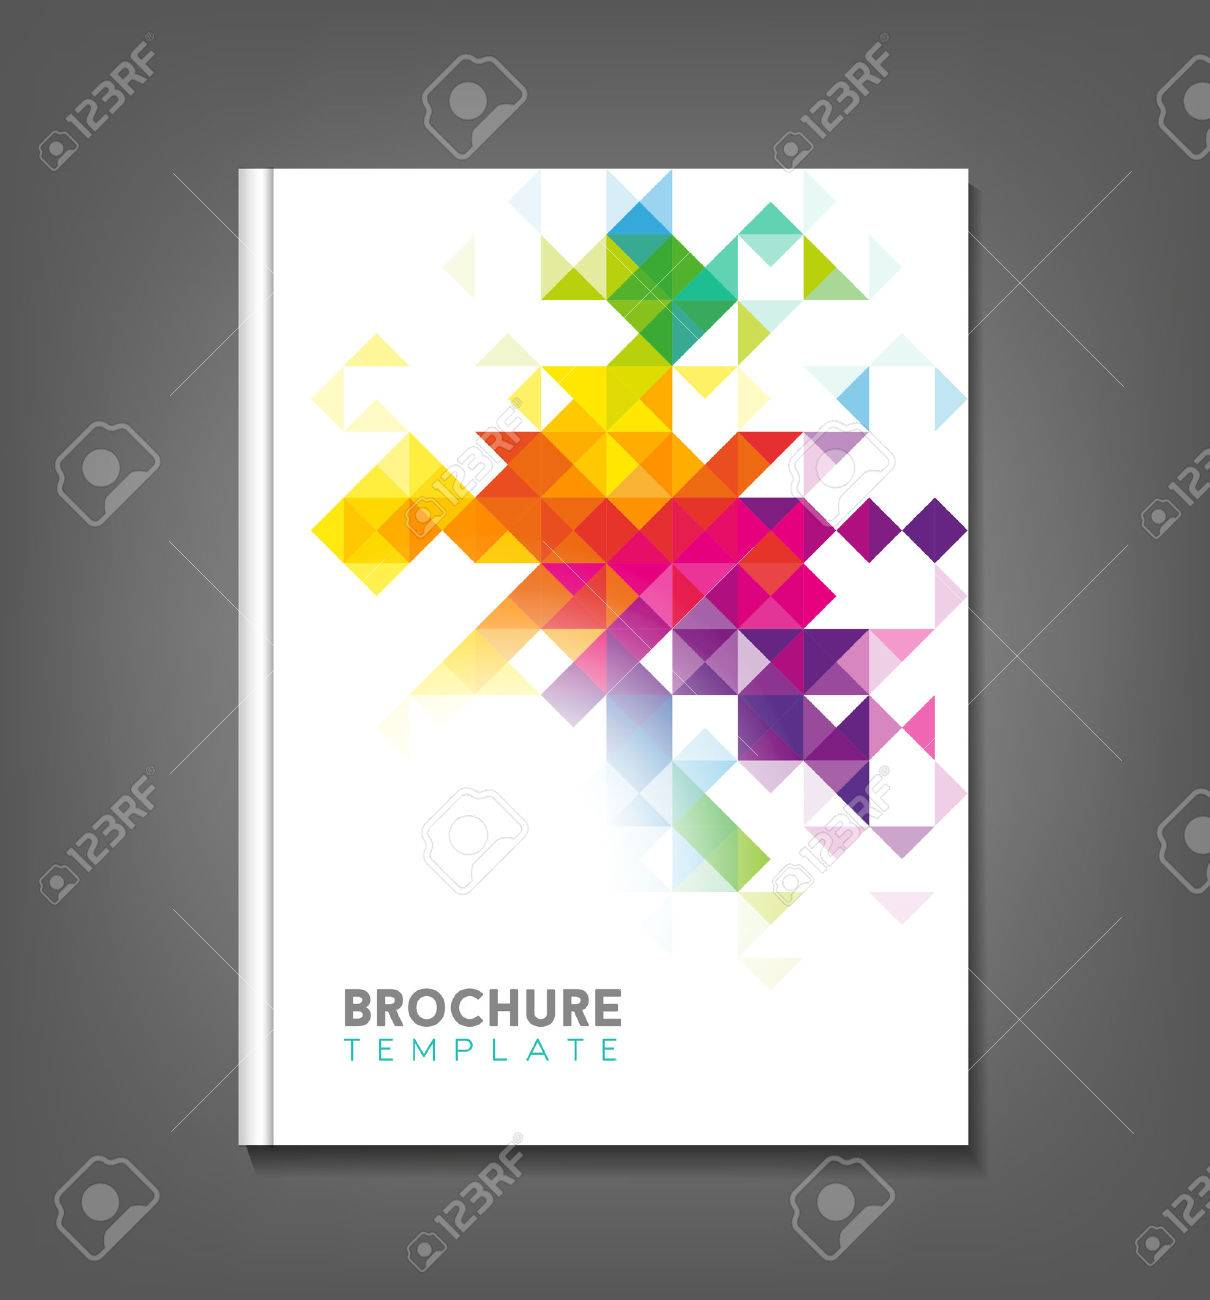 Brochure Template, Book Cover, Flyer Design Royalty Free Cliparts ...